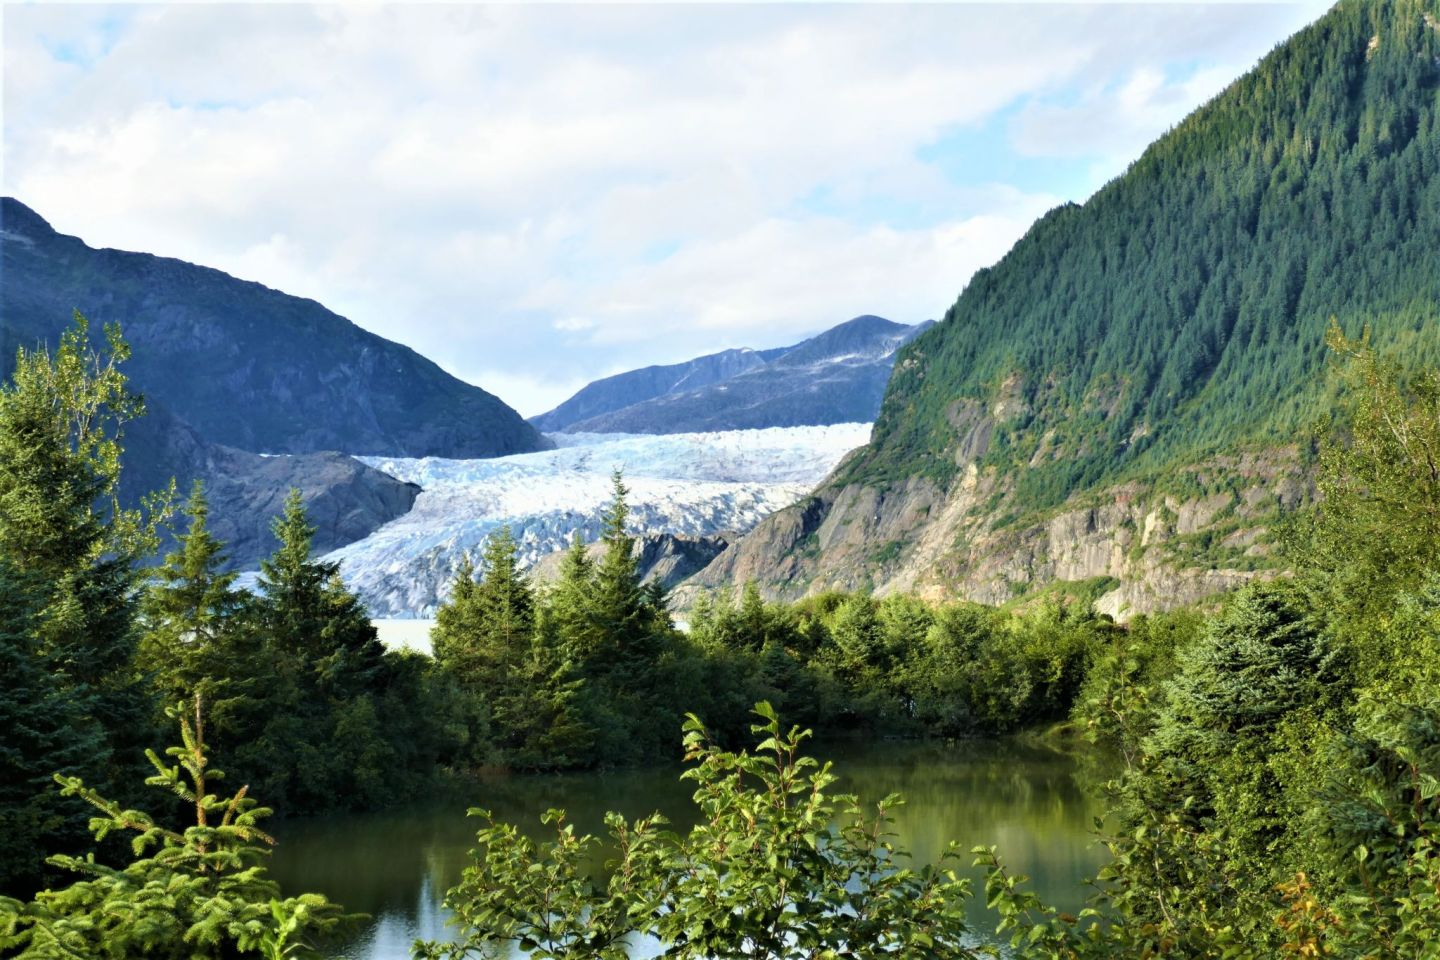 Must Do Tours in Juneau Alaska - Mendenhall Glacier & Whale Watching - Lucy Williams Global